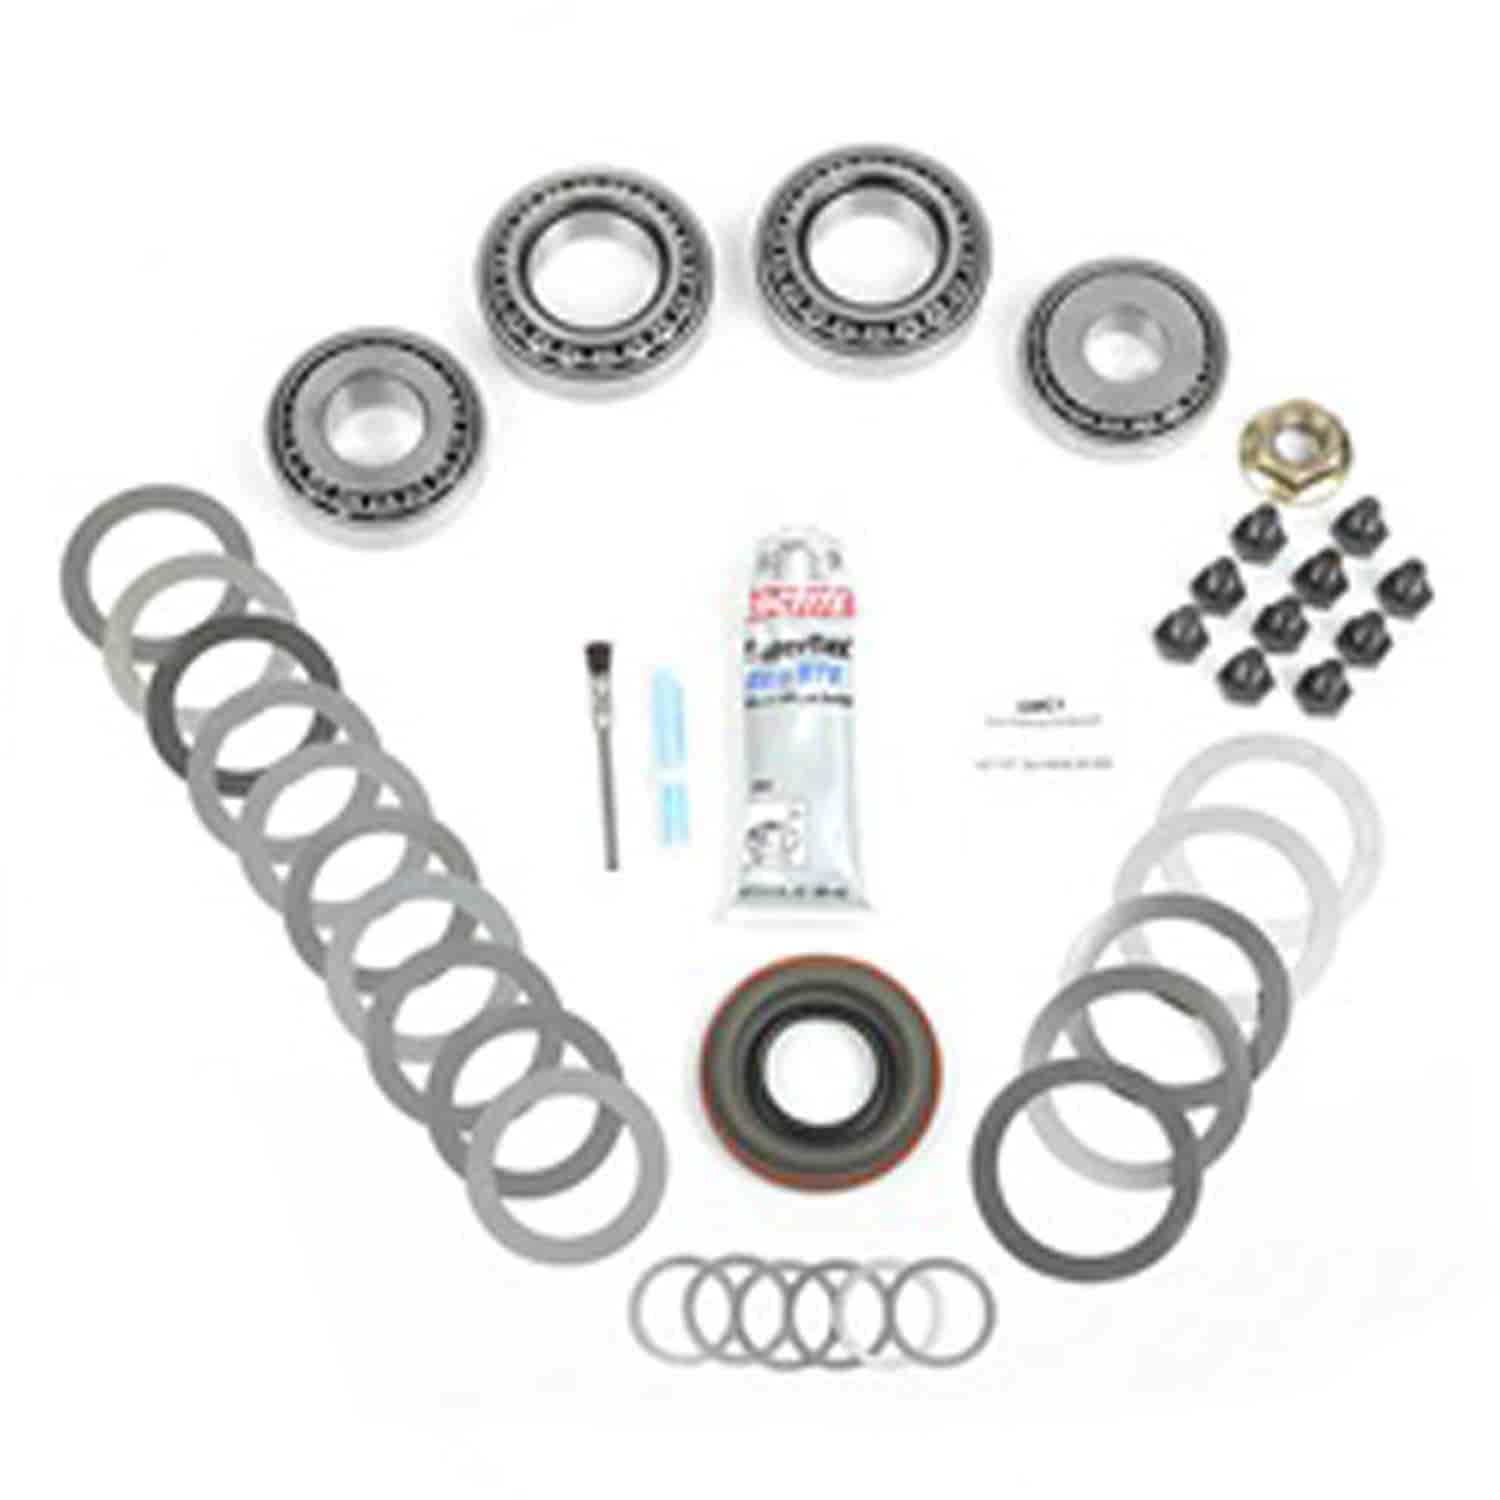 Omix Ada 04 This Differential Rebuild Kit From Omix